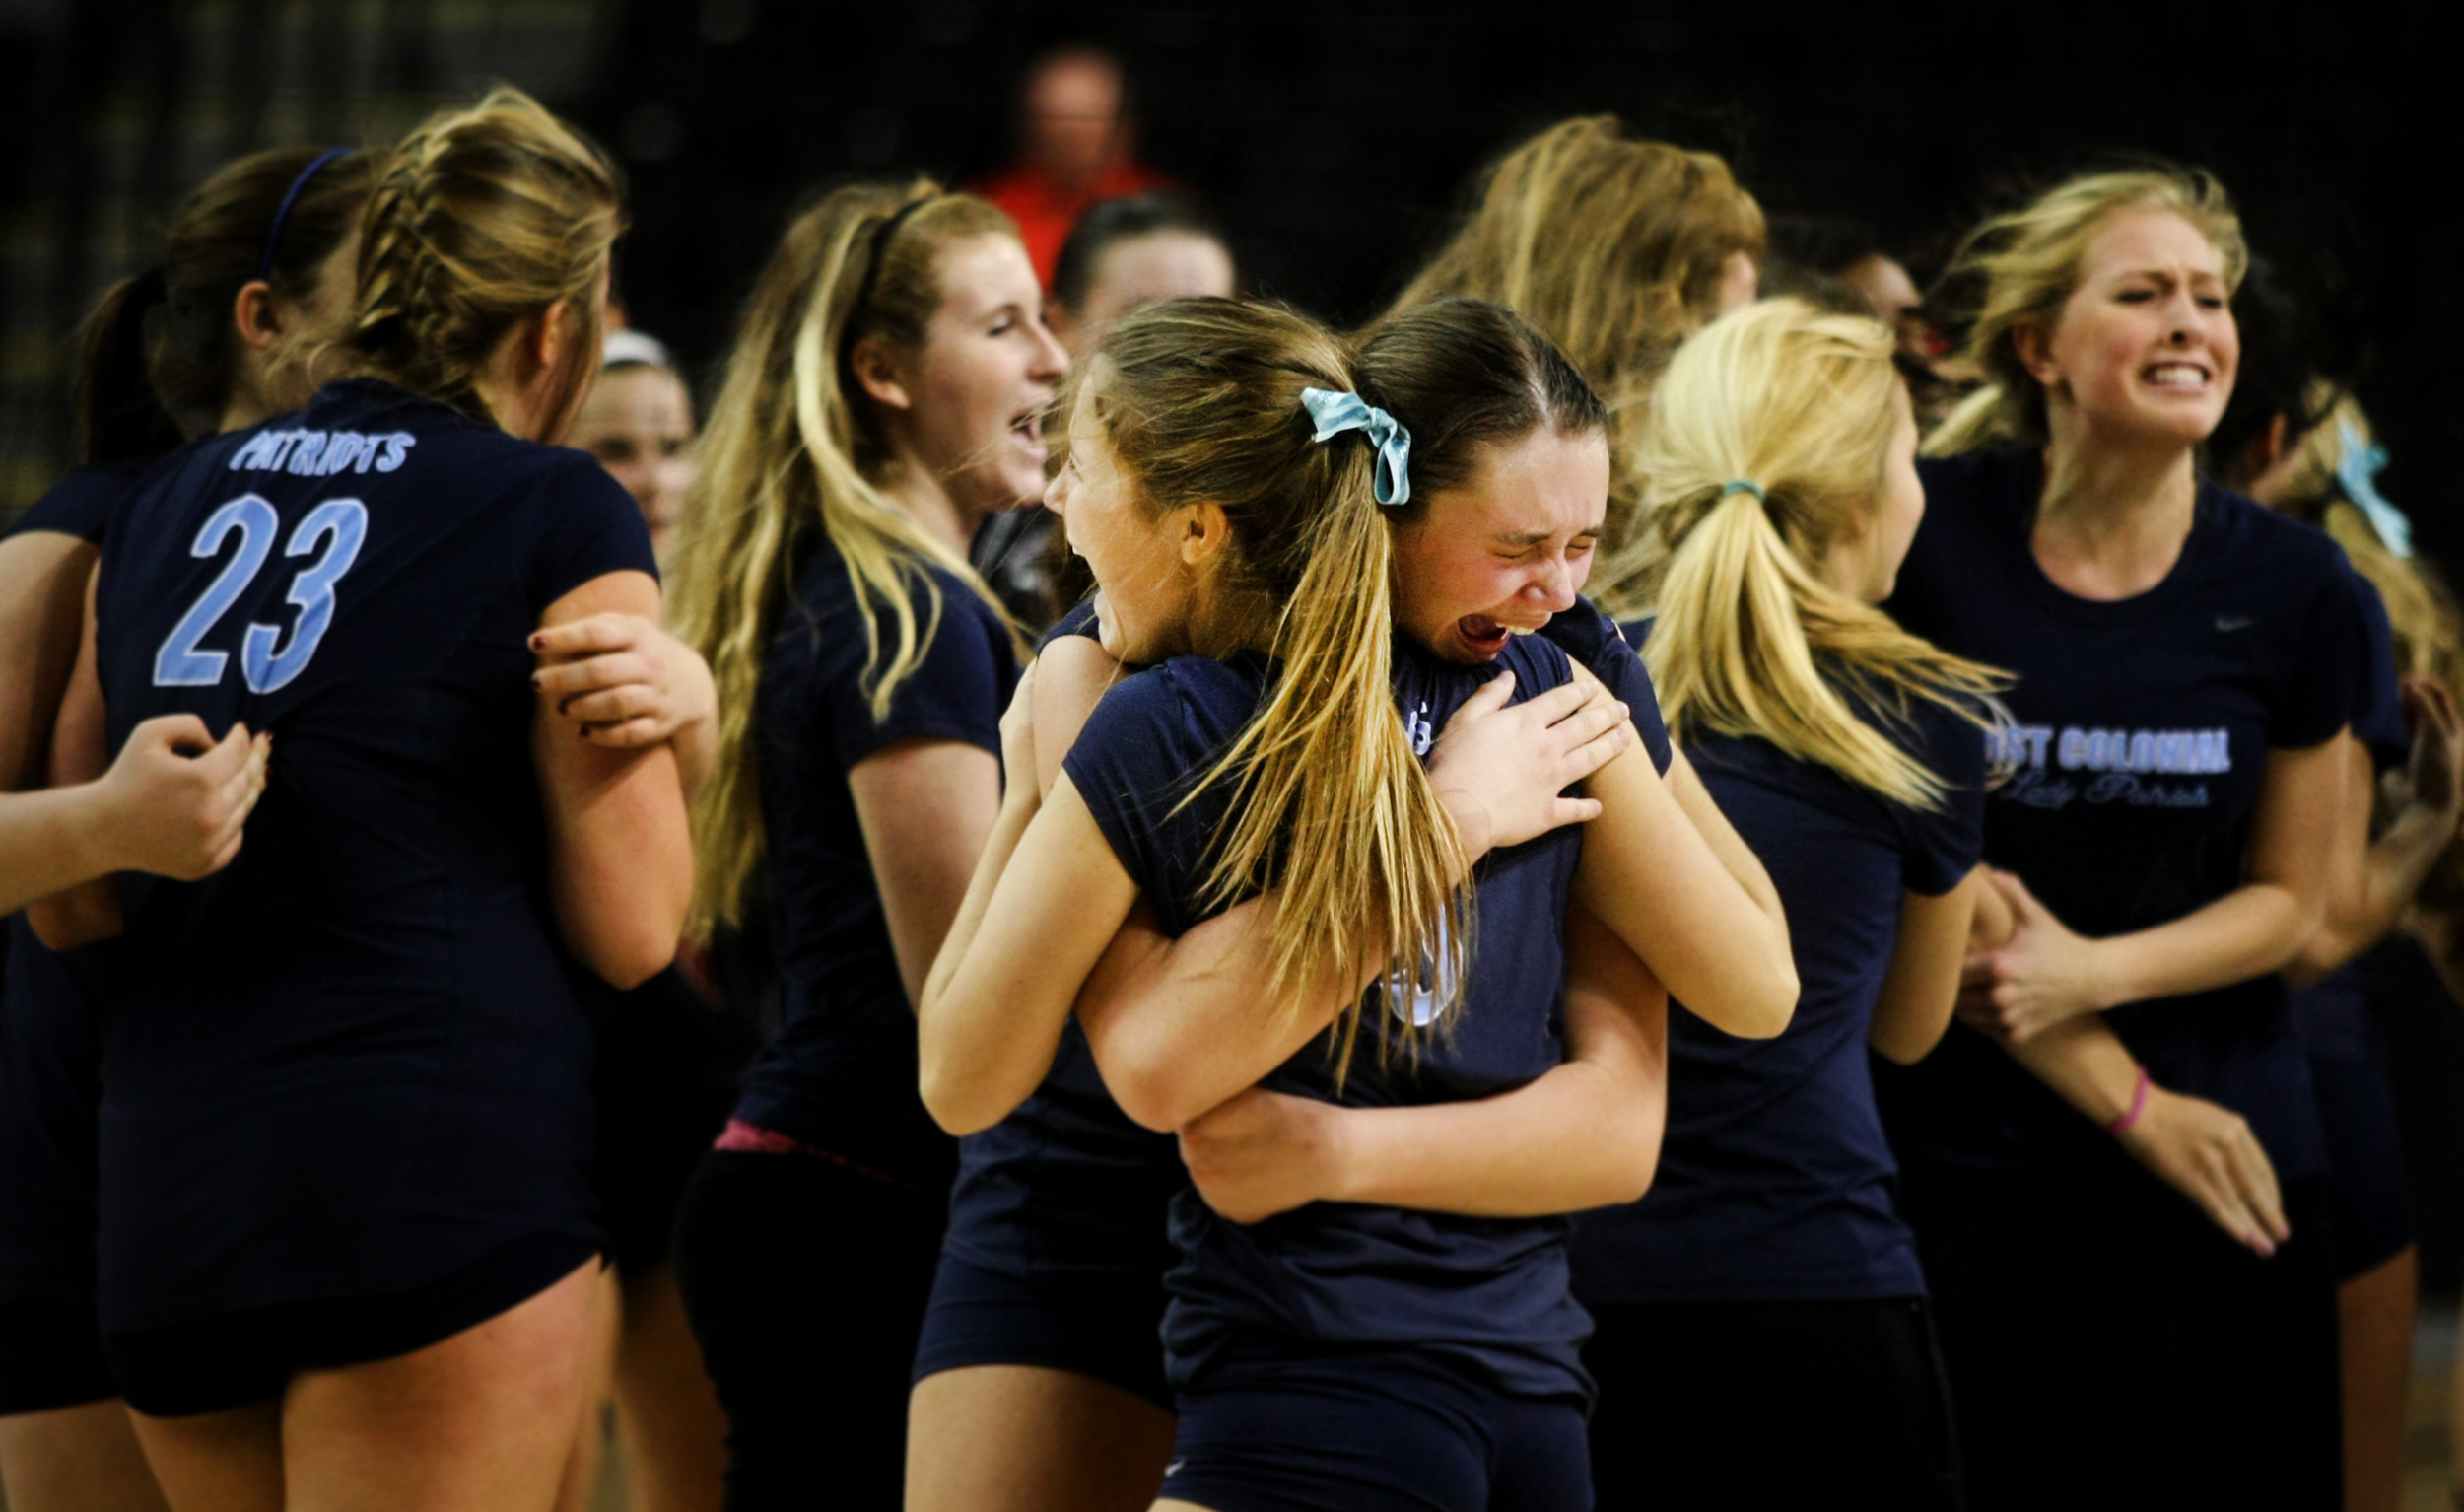 First Colonial's Rowan Ennis, center with face, and teammate Emily Guimond embrace after First Colonial beat James Madison in five-sets to claim the Group 6A girls volleyball championship.